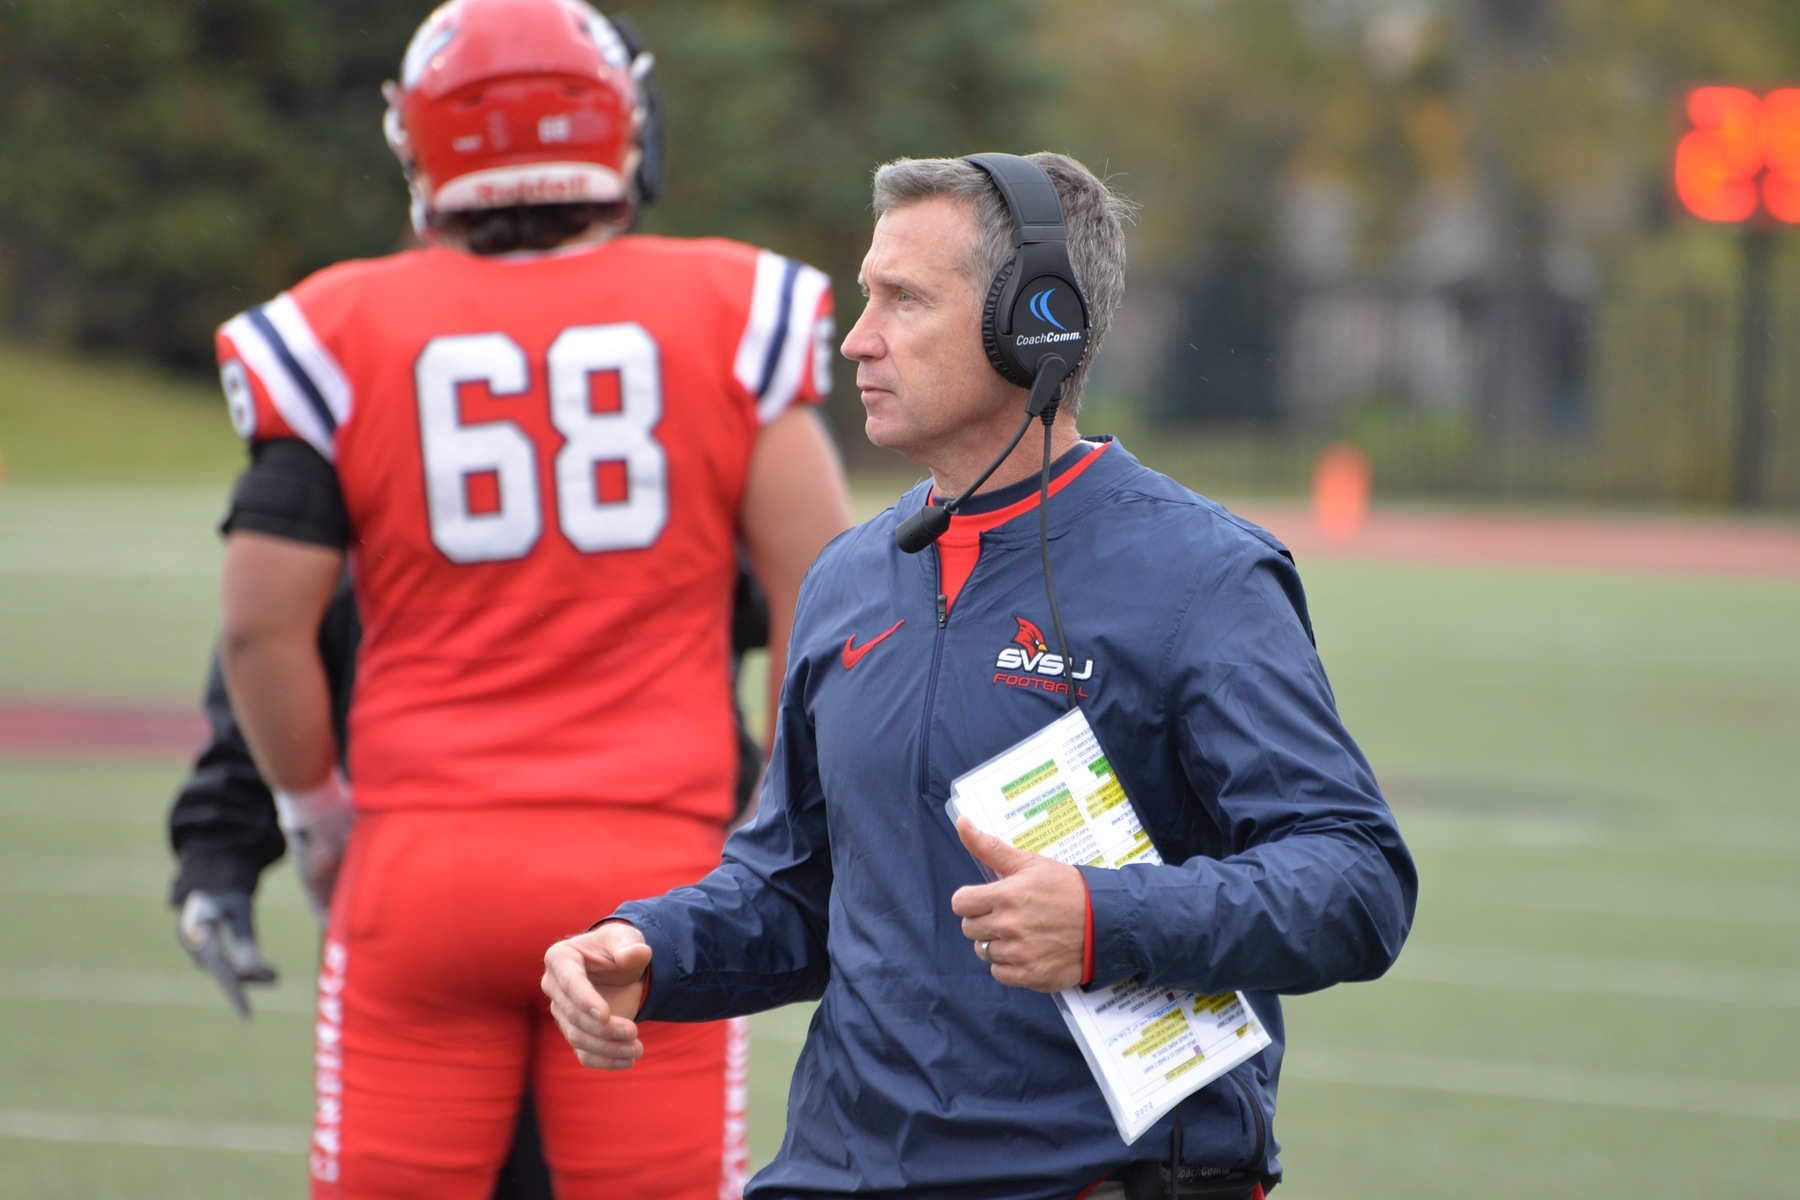 Head football coach Jim Collins leaving SVSU for a position with Army football